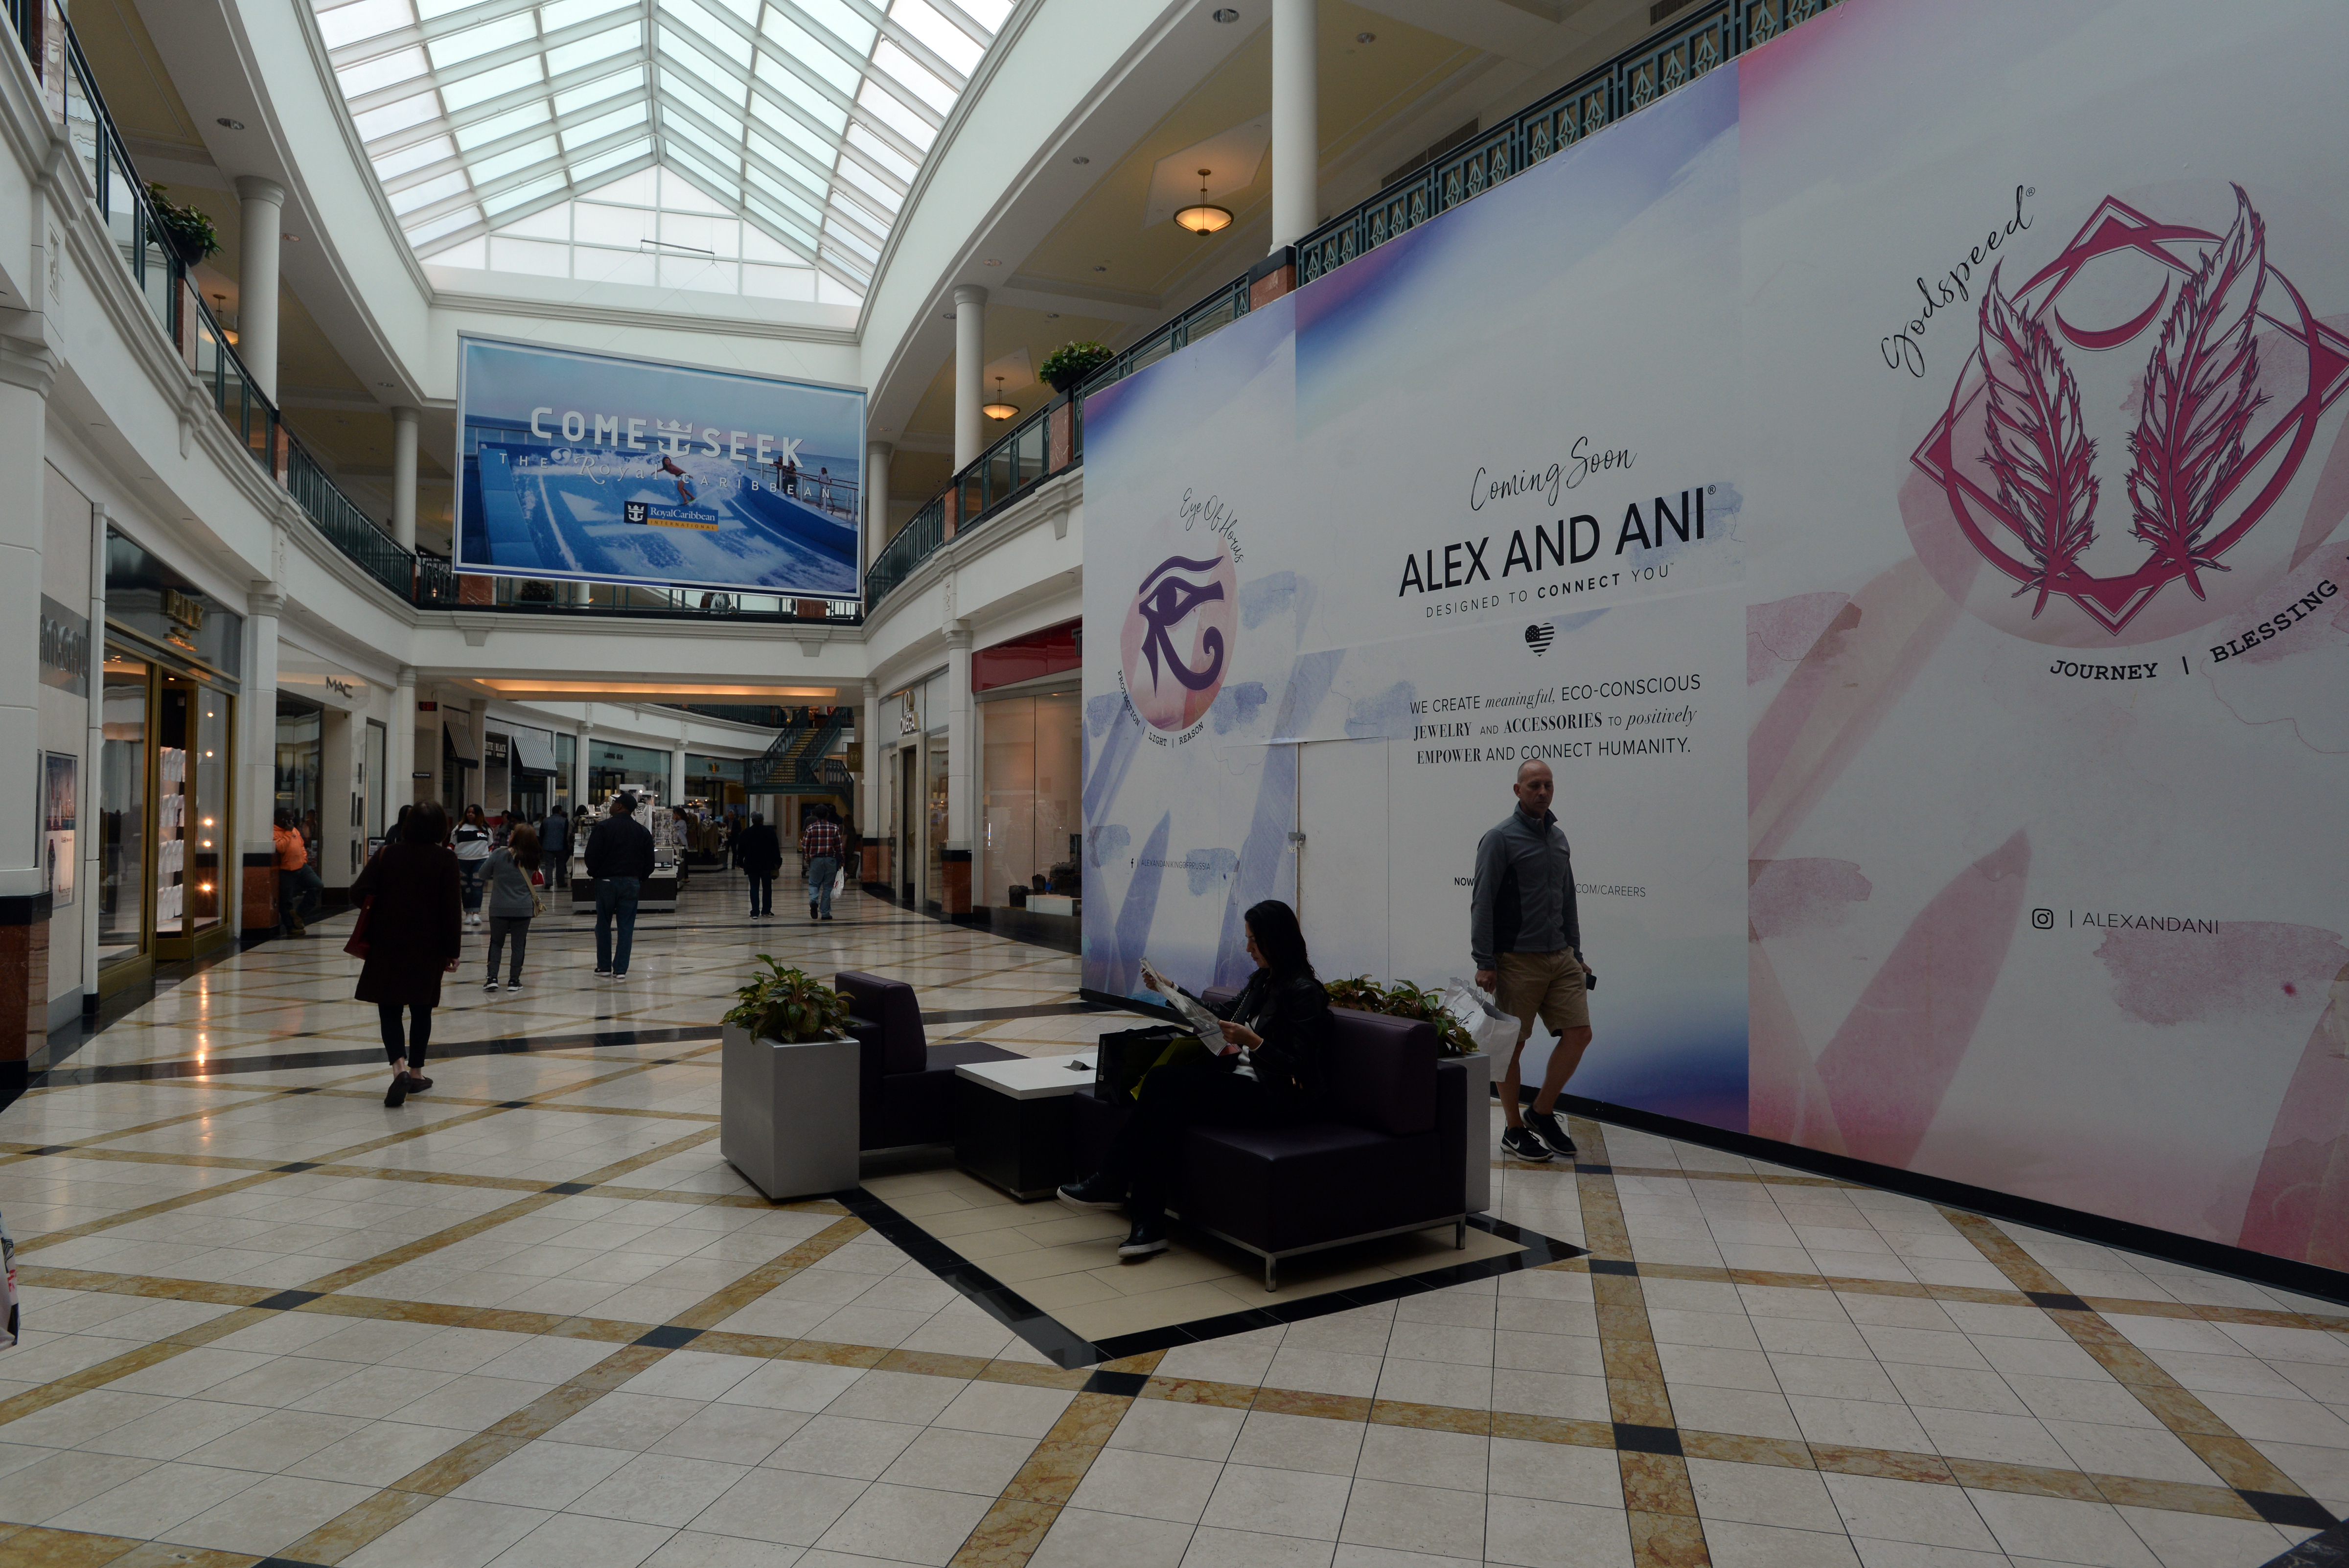 The AlEX AND ANI jewelry store is still under wraps during construction. The eco-friendly jeweler debuts near Lord & Taylor at King of Prussia Mall late next month.